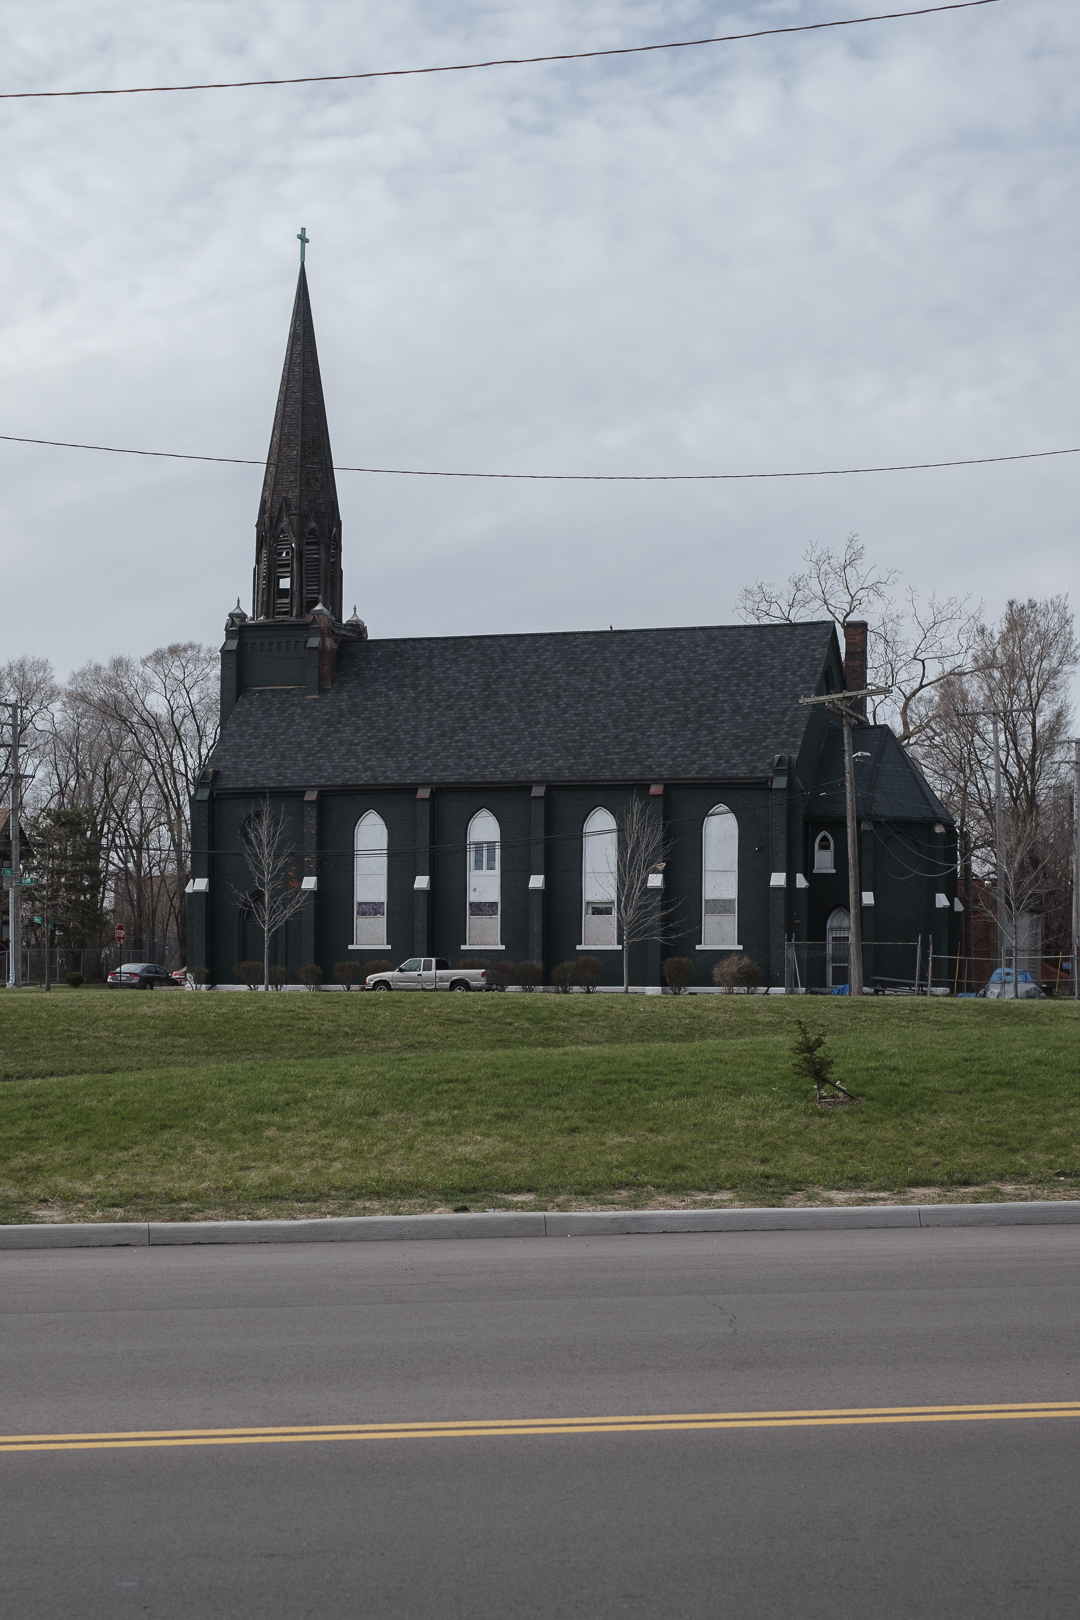 An old green traditional church building with large steeple.